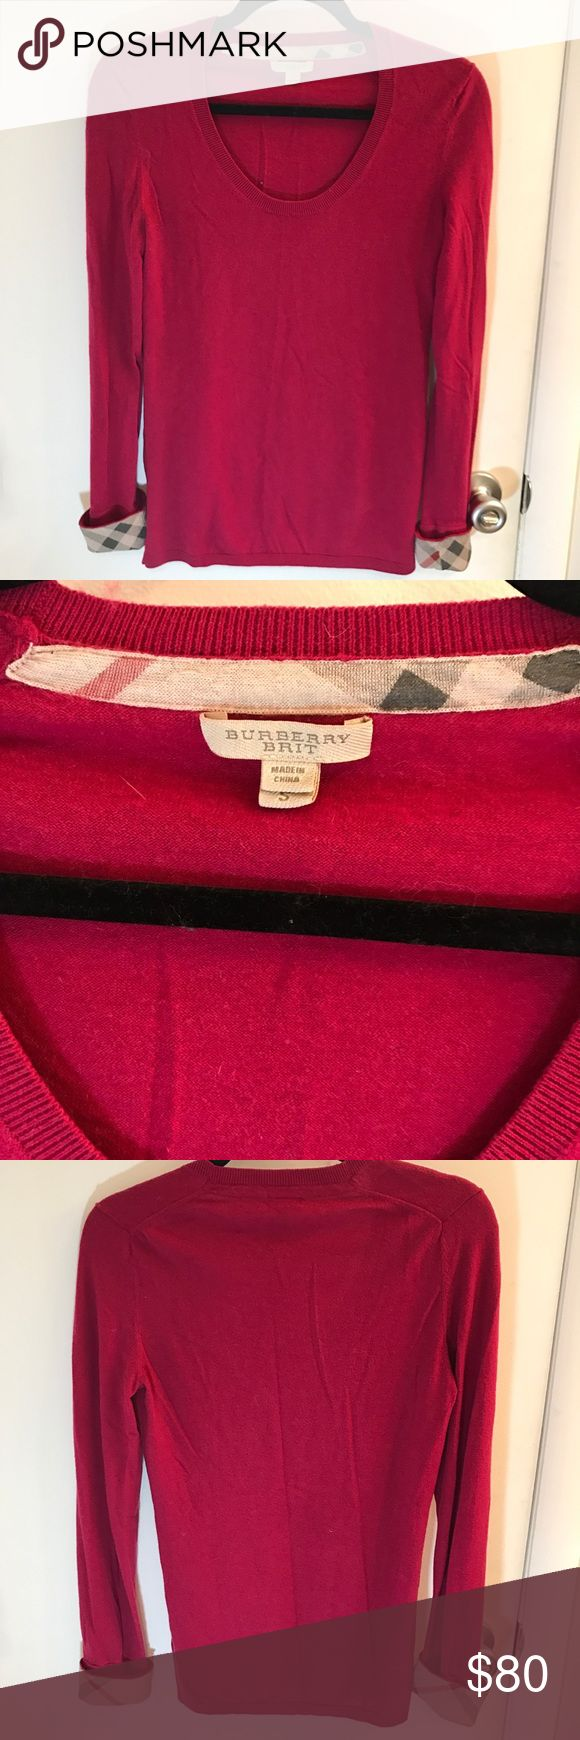 Raspberry Burberry Brit Sweater This classic Burberry sweater is accented with the trademark Burberry check print in the cuffs. The cuffs can be folded up or down, depending on whether you want the check to show. The wool is in excellent condition. Feel free to ask any questions or make a reasonable offer. Burberry Sweaters Crew & Scoop Necks